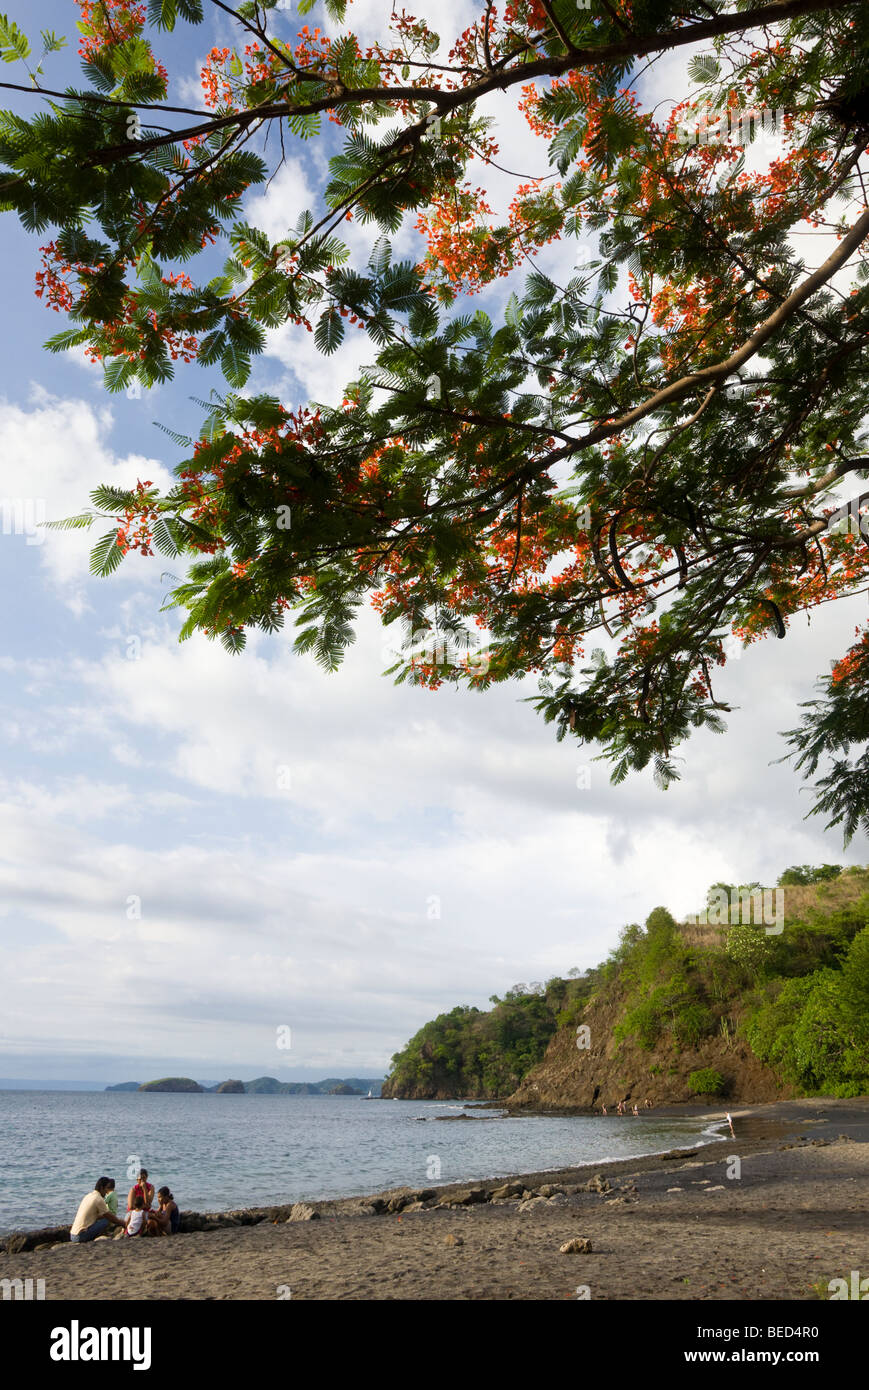 Costa Rican family picnicking along the quiet black sand beach of Playa Ocotal in the Guanacaste Province of Costa - Stock Image